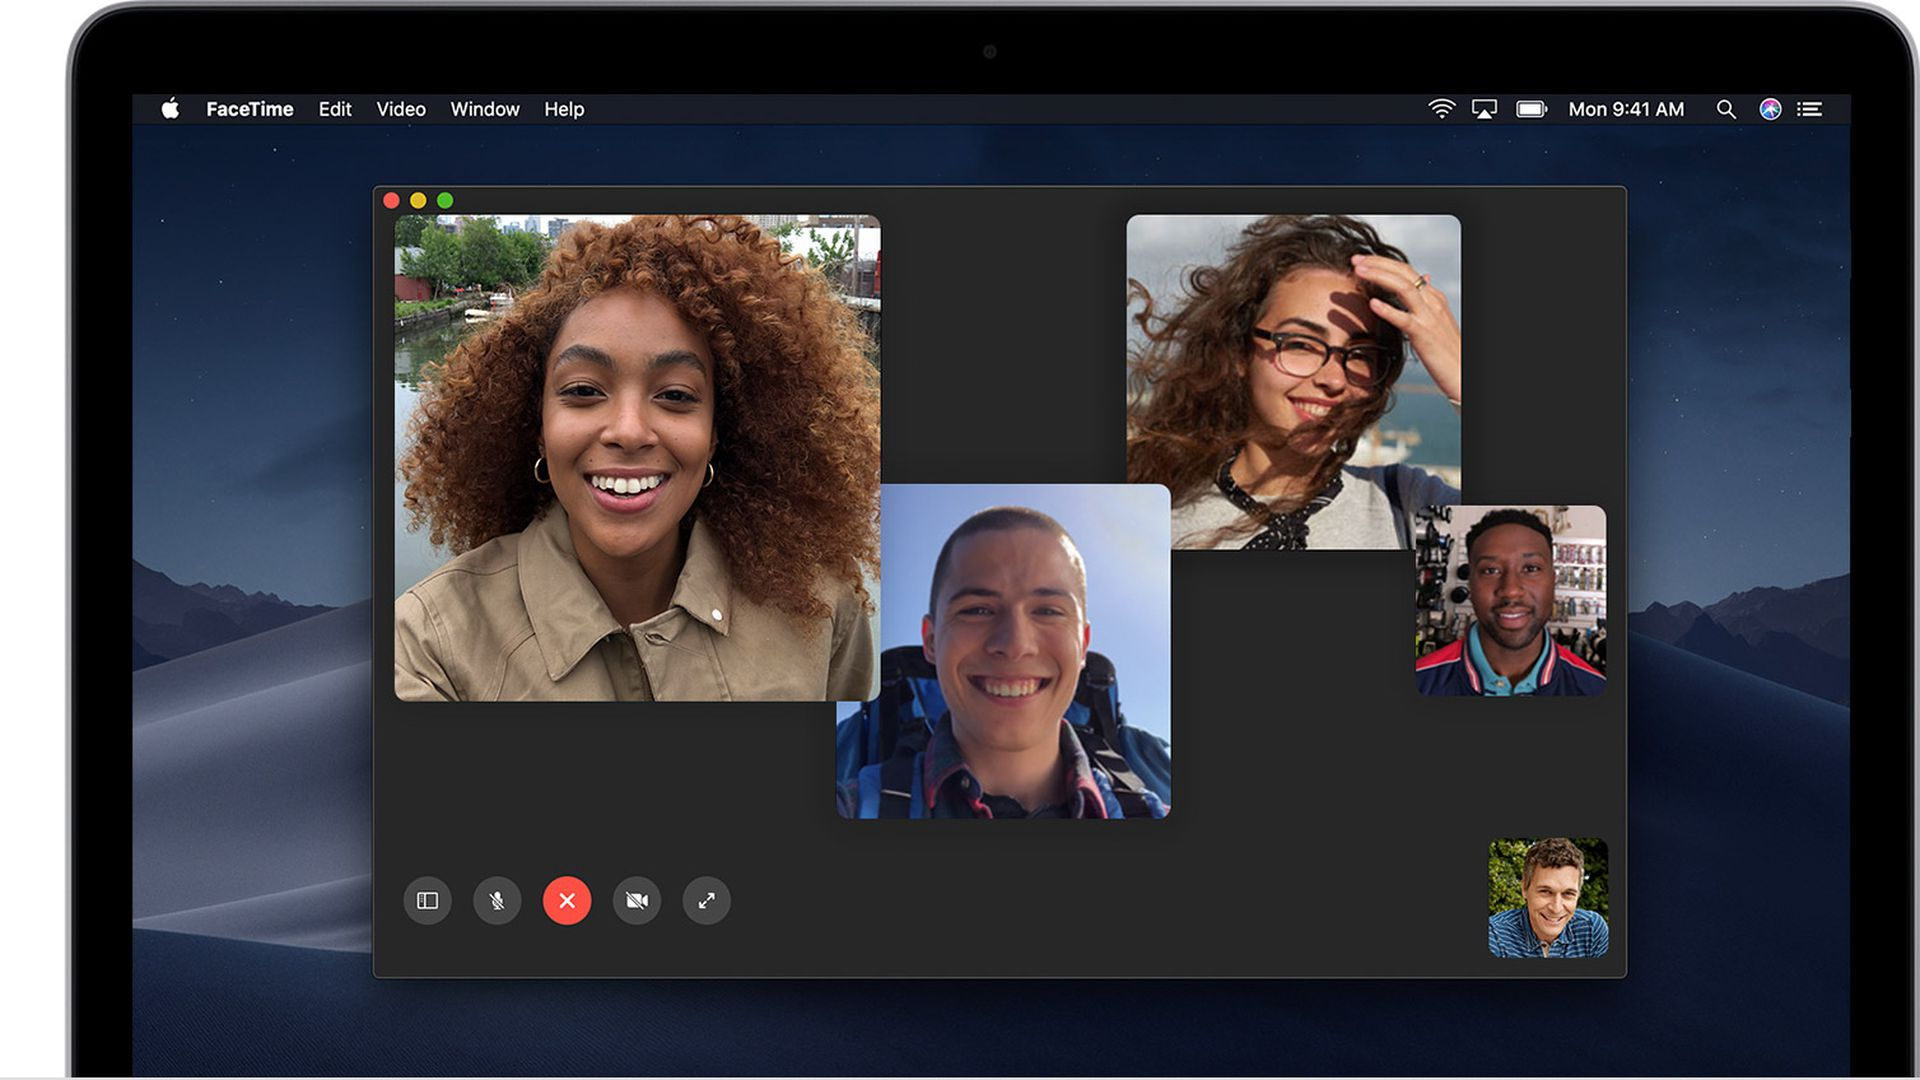 Apple's FaceTime chat app, as seen on a Mac